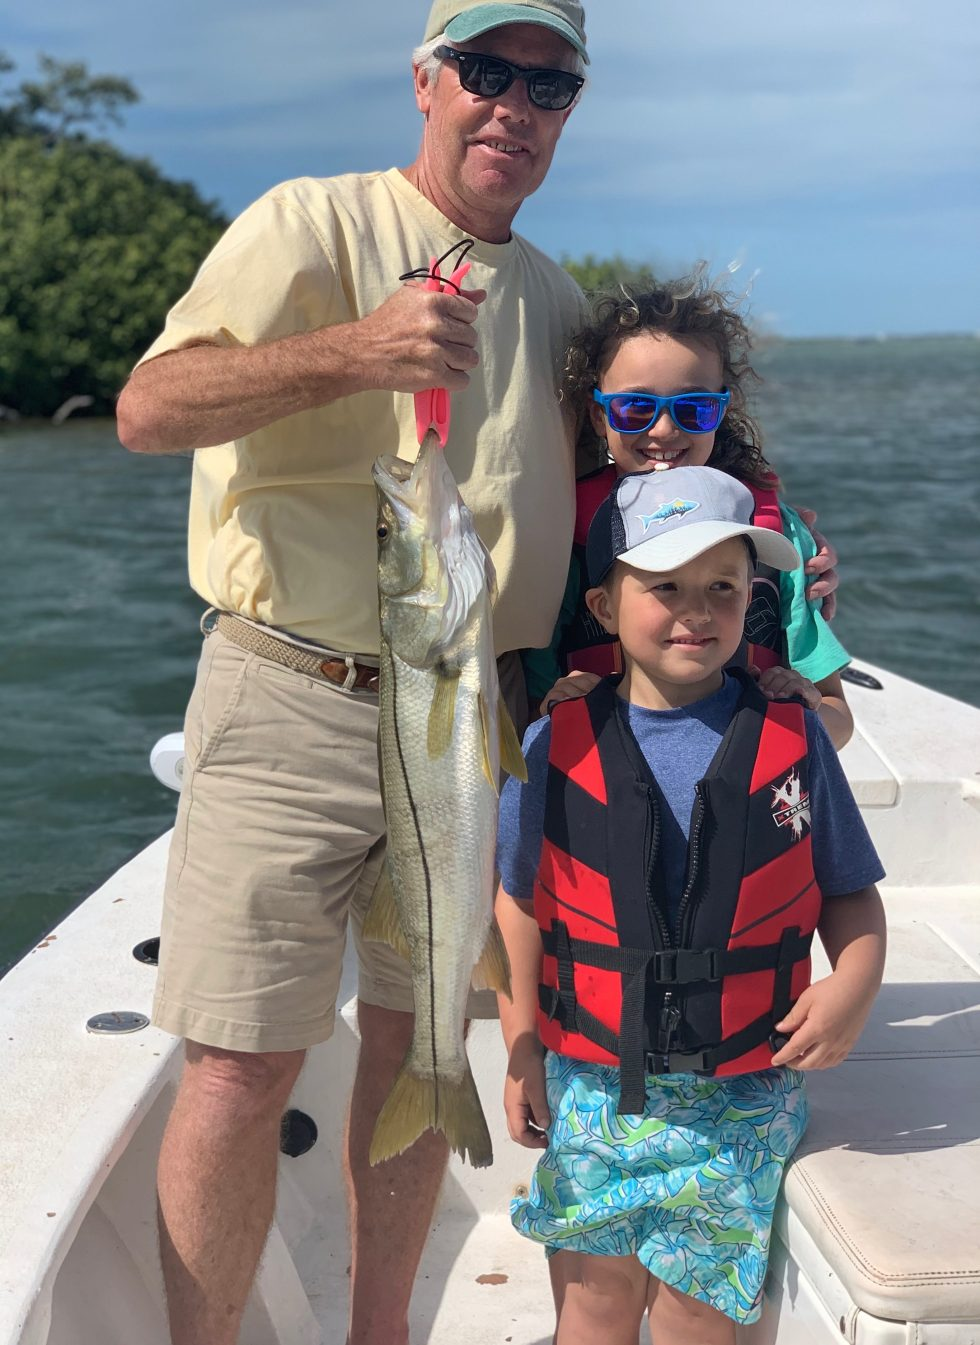 Snook, Sanibel Island Fishing, Catch & Release, Captiva Island, Monday, February 25, 2019.